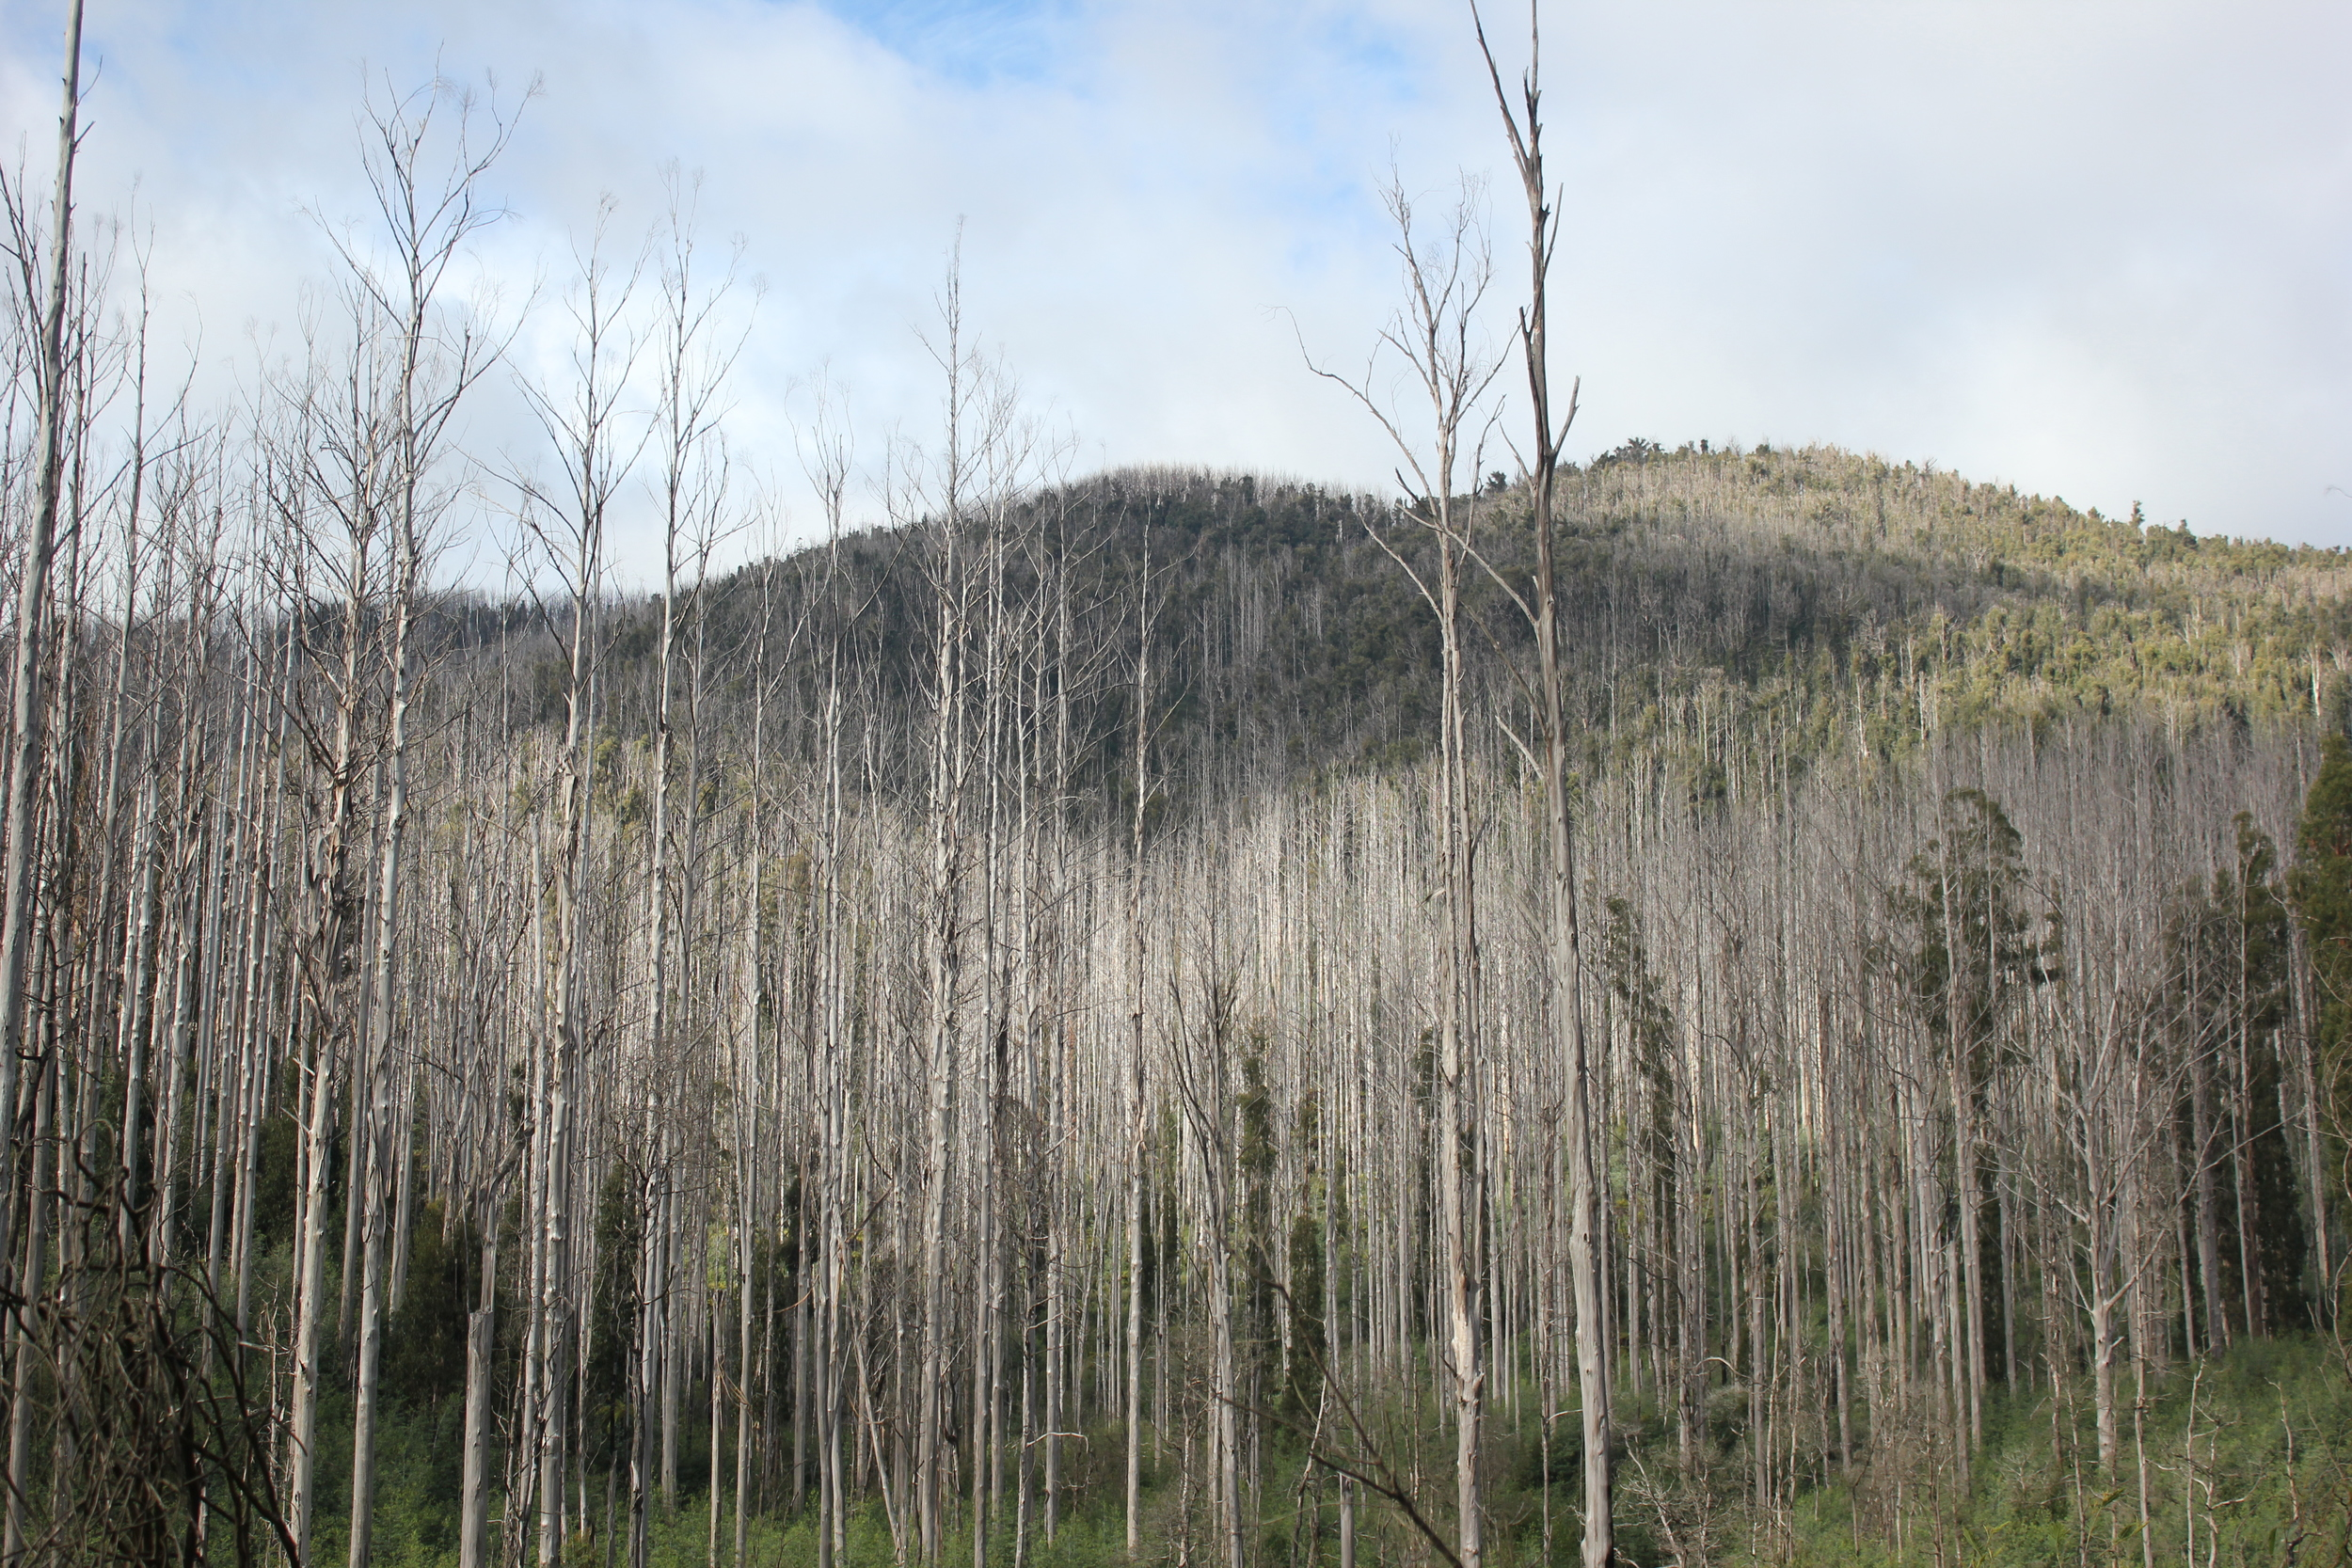 The landscape around Marysville is a stark reminder of the power of nature.